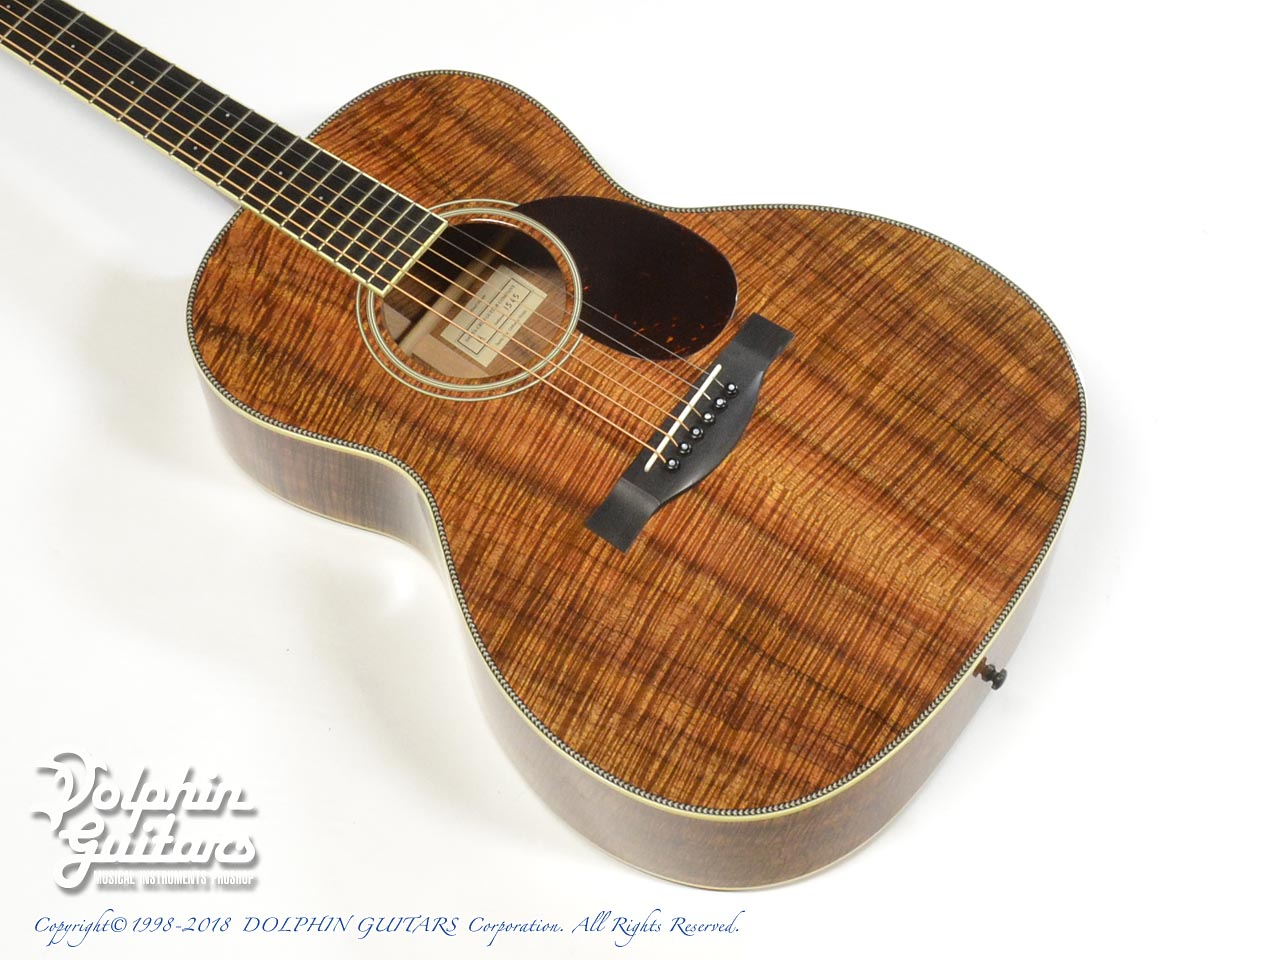 SANTA CRUZ:H Model Koa (All Hawaiian Koawood)